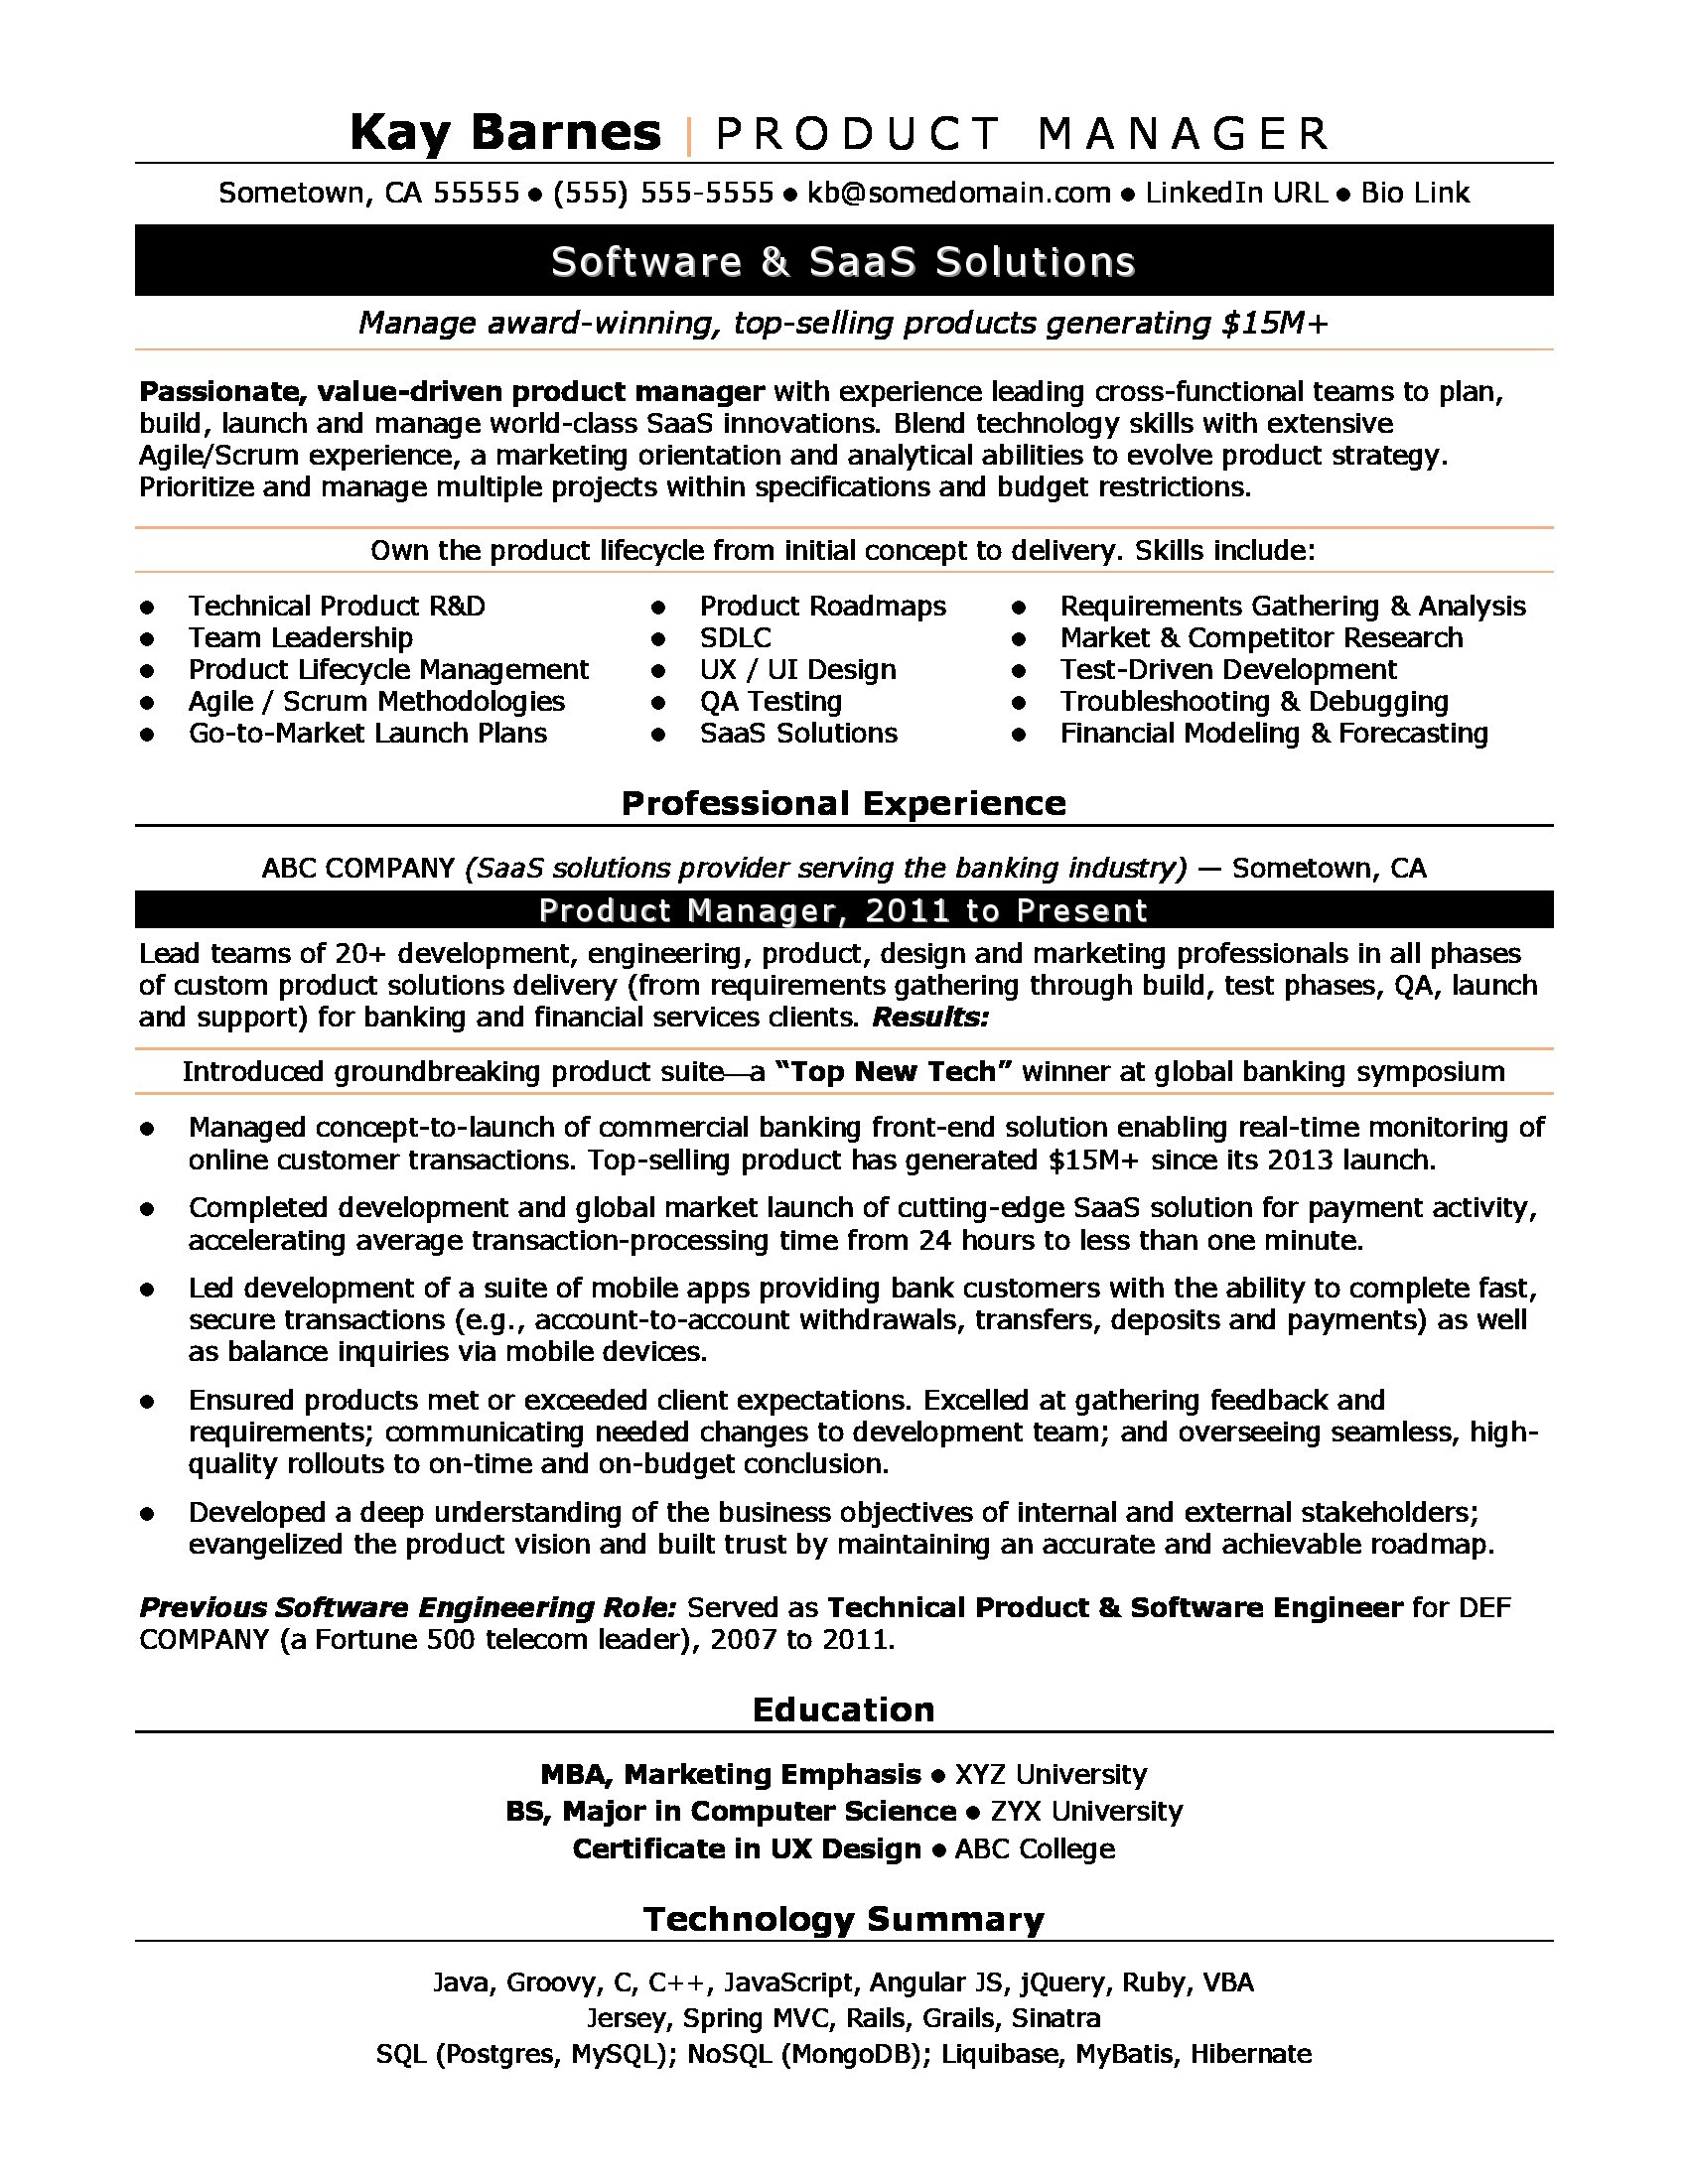 product manager resume sample - Product Manager Resume